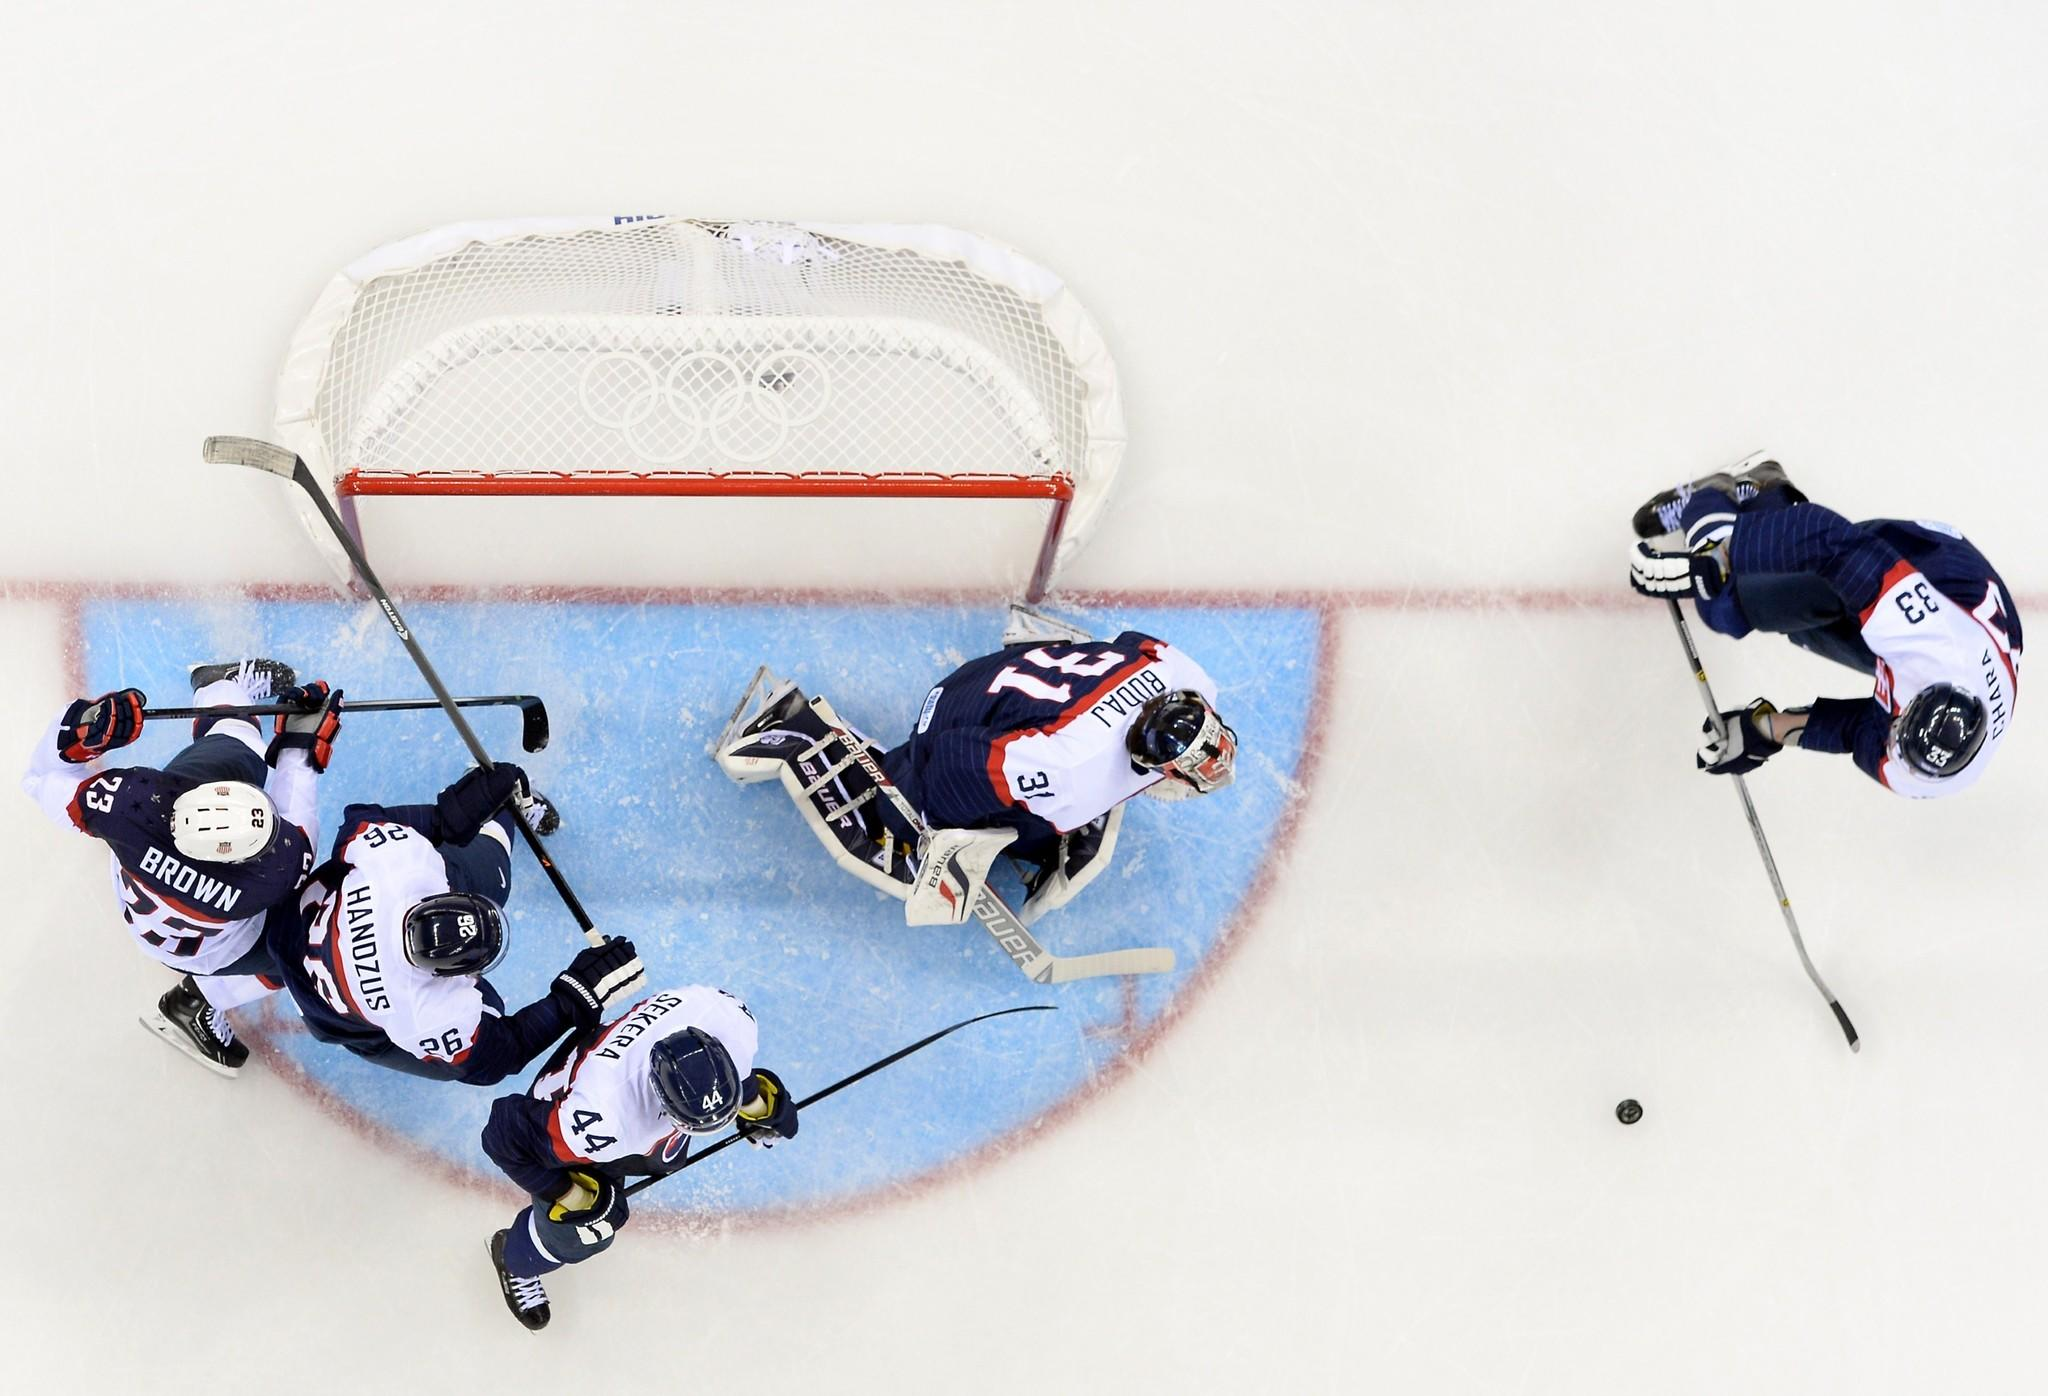 US Dustin Brown (L) challenges Slovakia's goalkeeper Peter Budaj (C), Zdeno Chara (R), Andrej Sekera and Michal Handzus (2nd-L) during the Men's Ice Hockey Group A match between Slovakia and the United States.